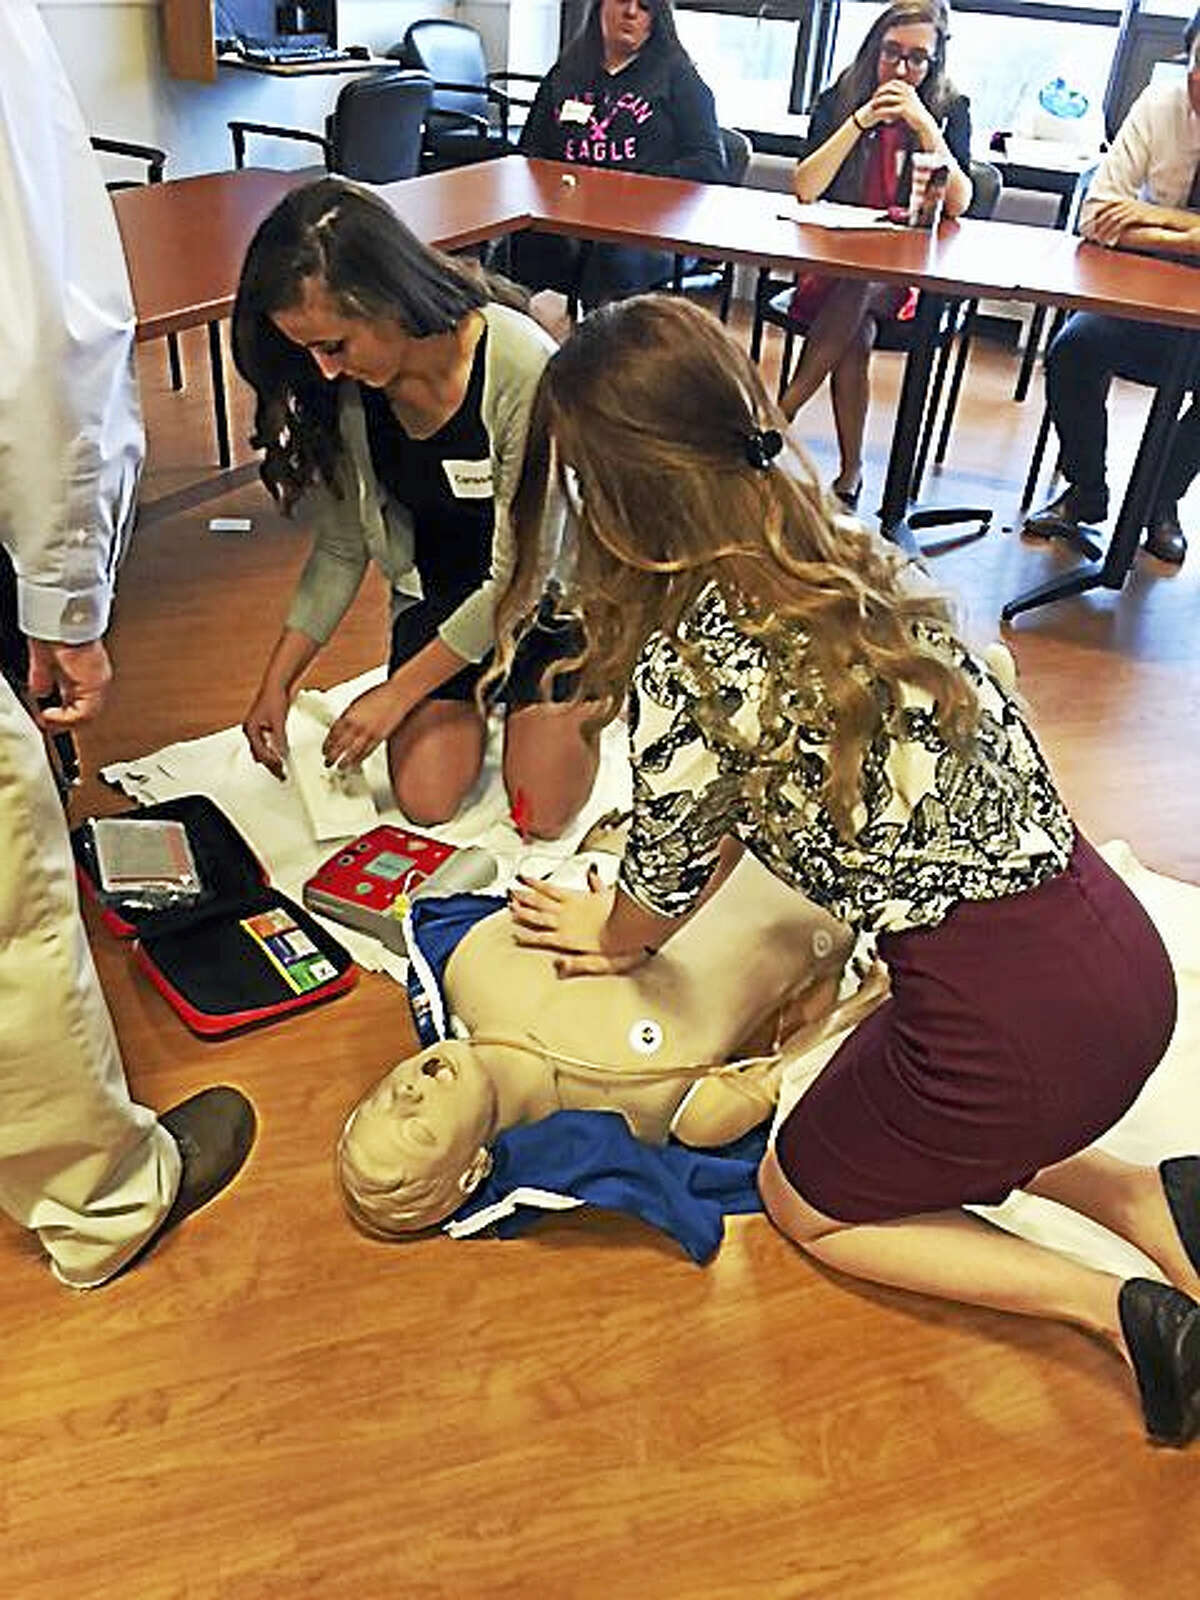 Torrington High School students took a step into the professional world Thursday, as they participated in a job-shadowing event organized by the district, including at Charlotte Hungerford Hospital.